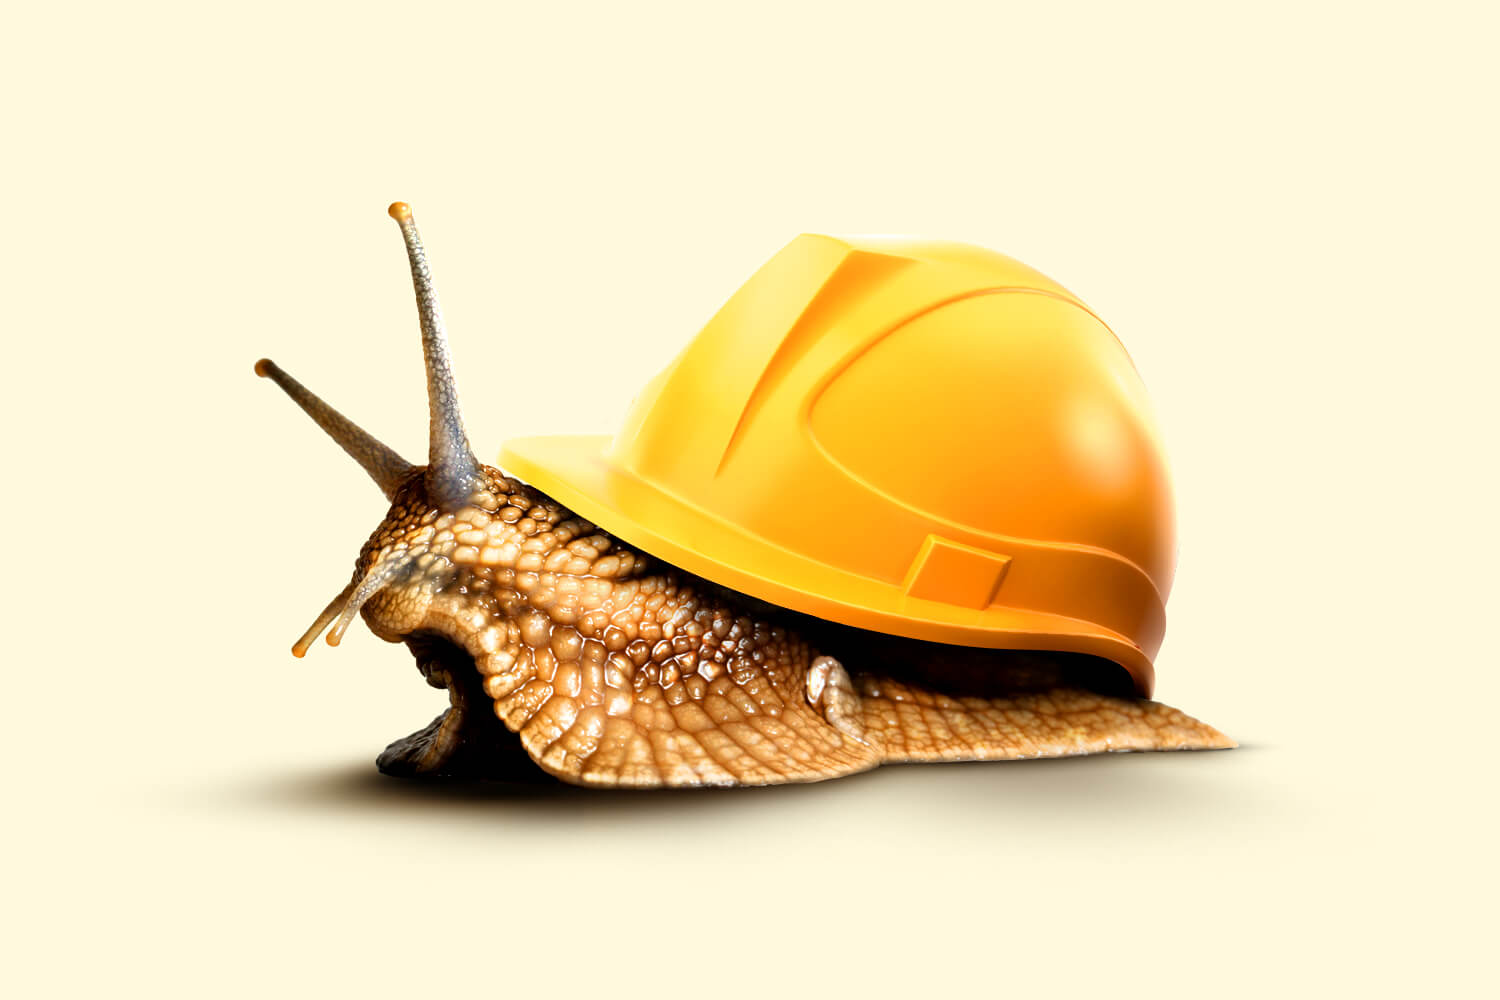 snail with hardhat